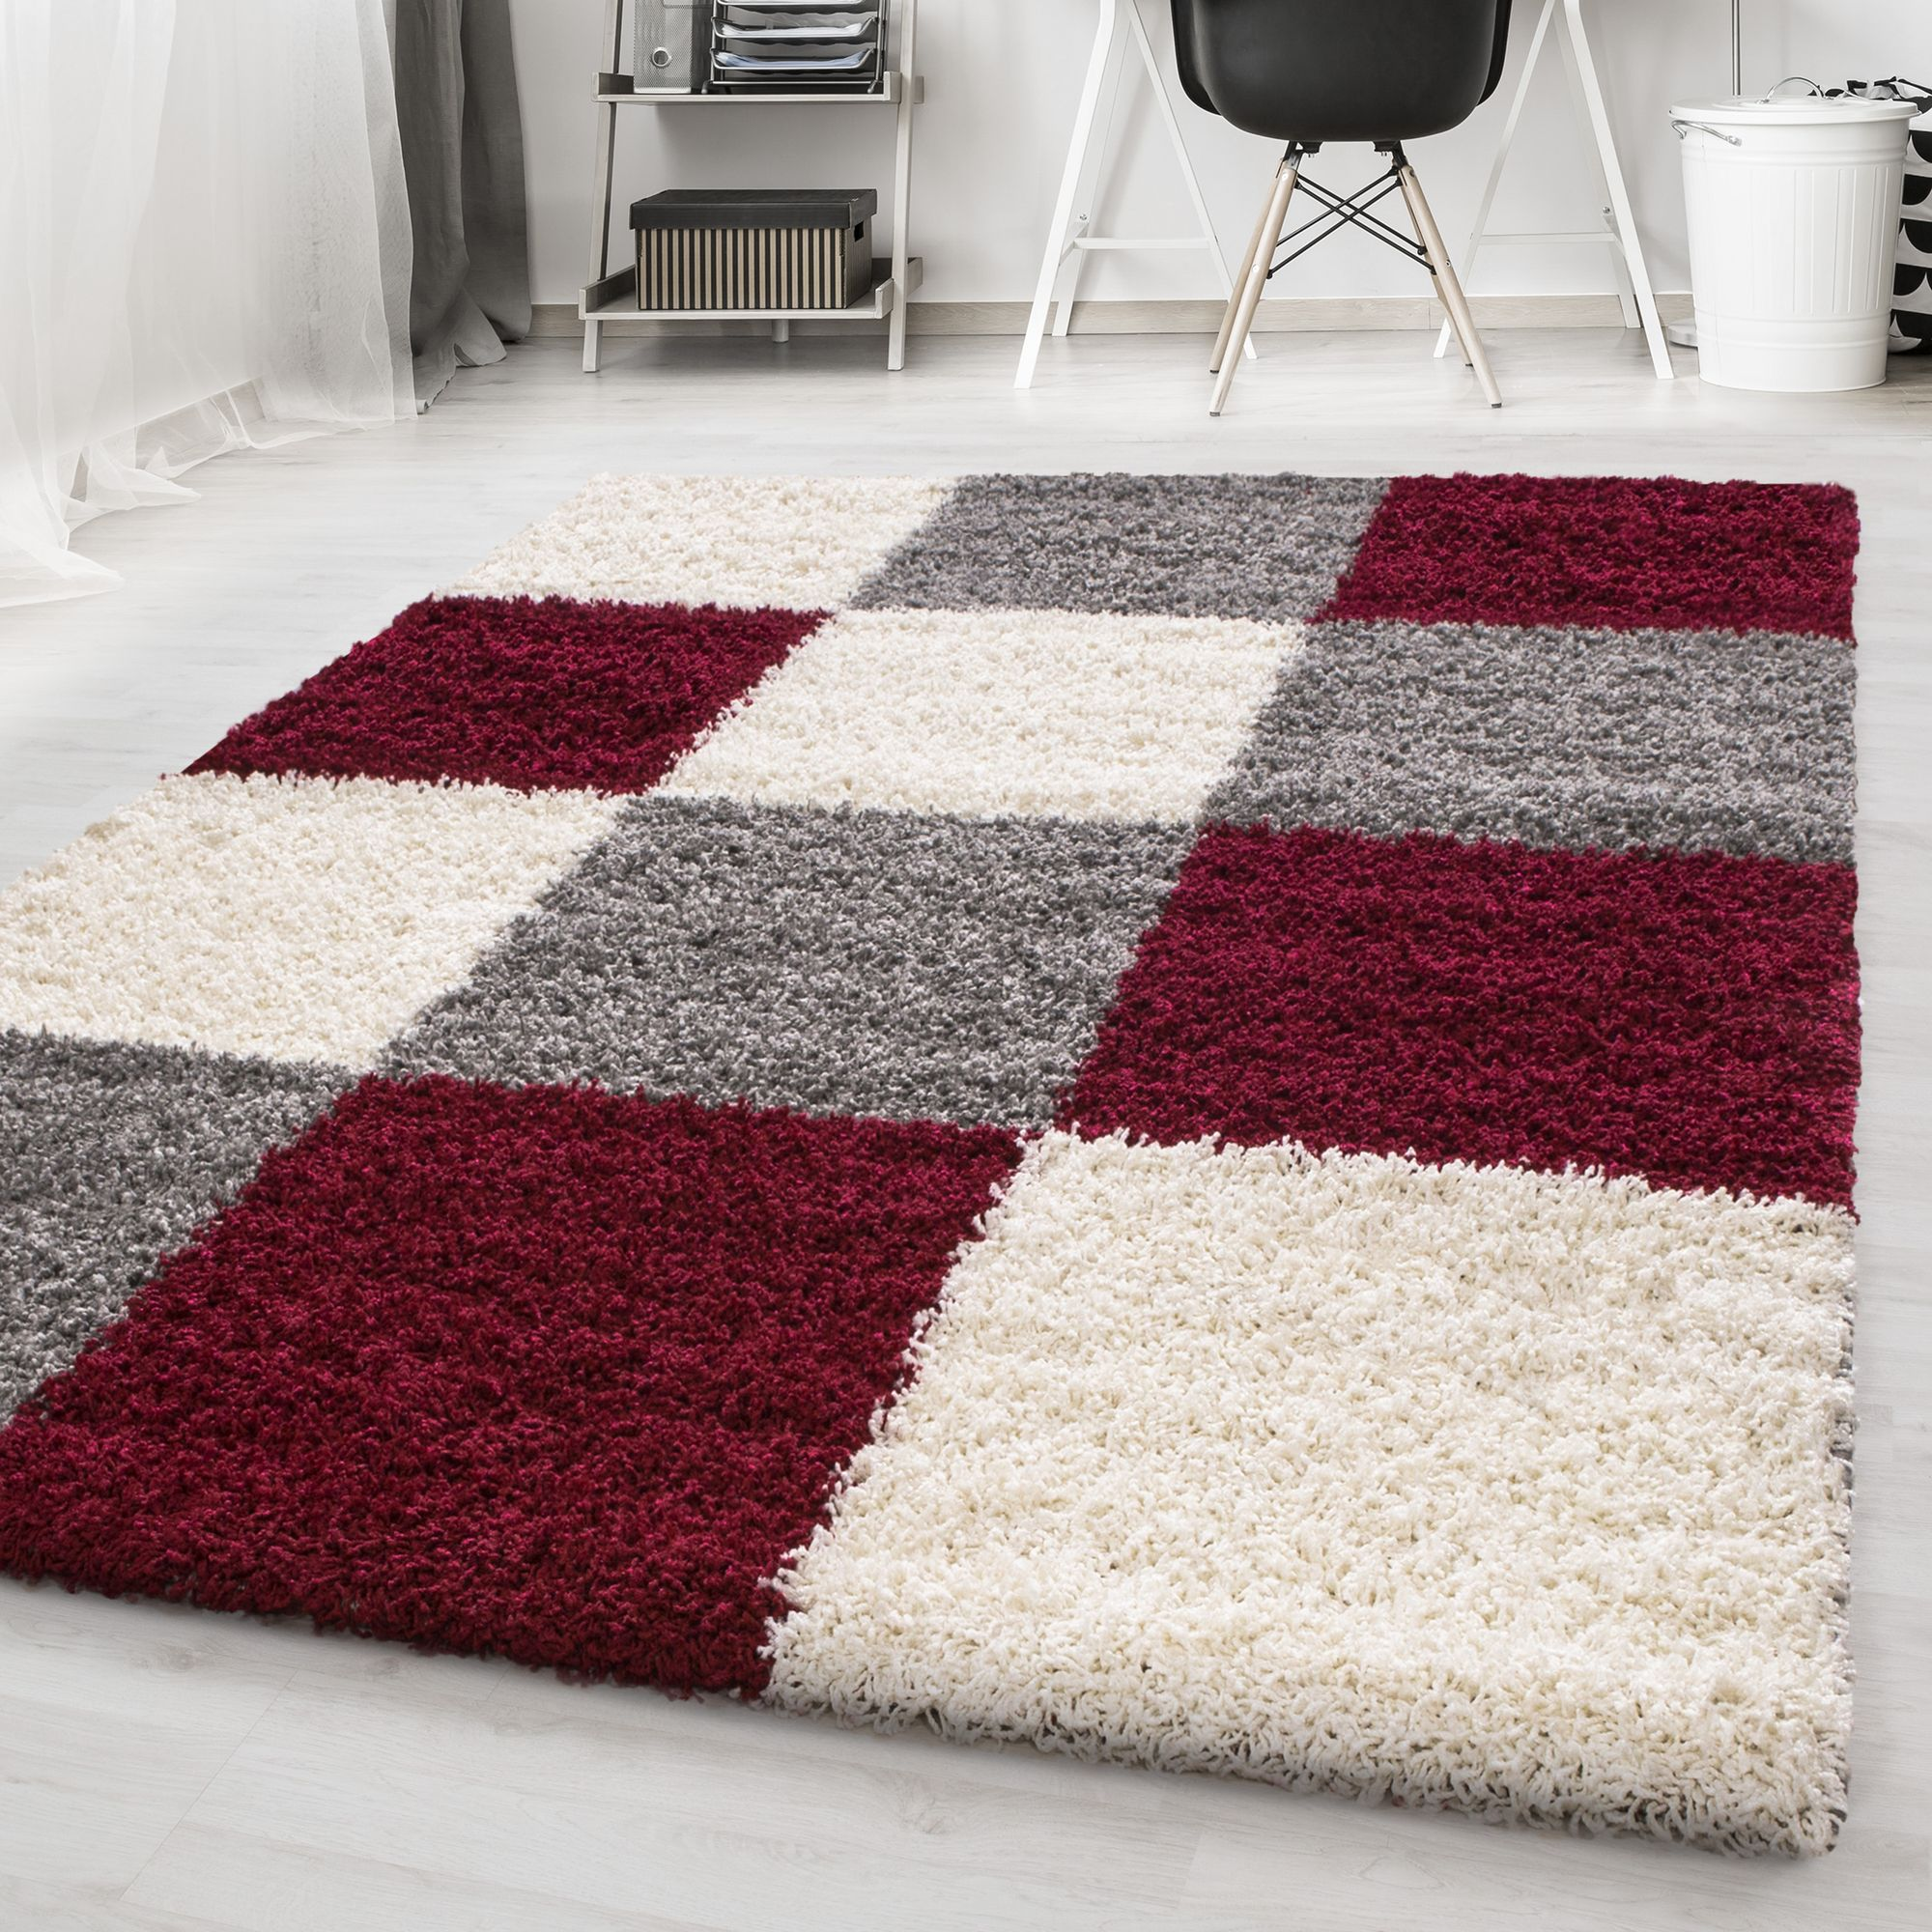 Carpets & Rugs for Living Room shaggy designer Carpets & Rugs with 3 cm square Carpets